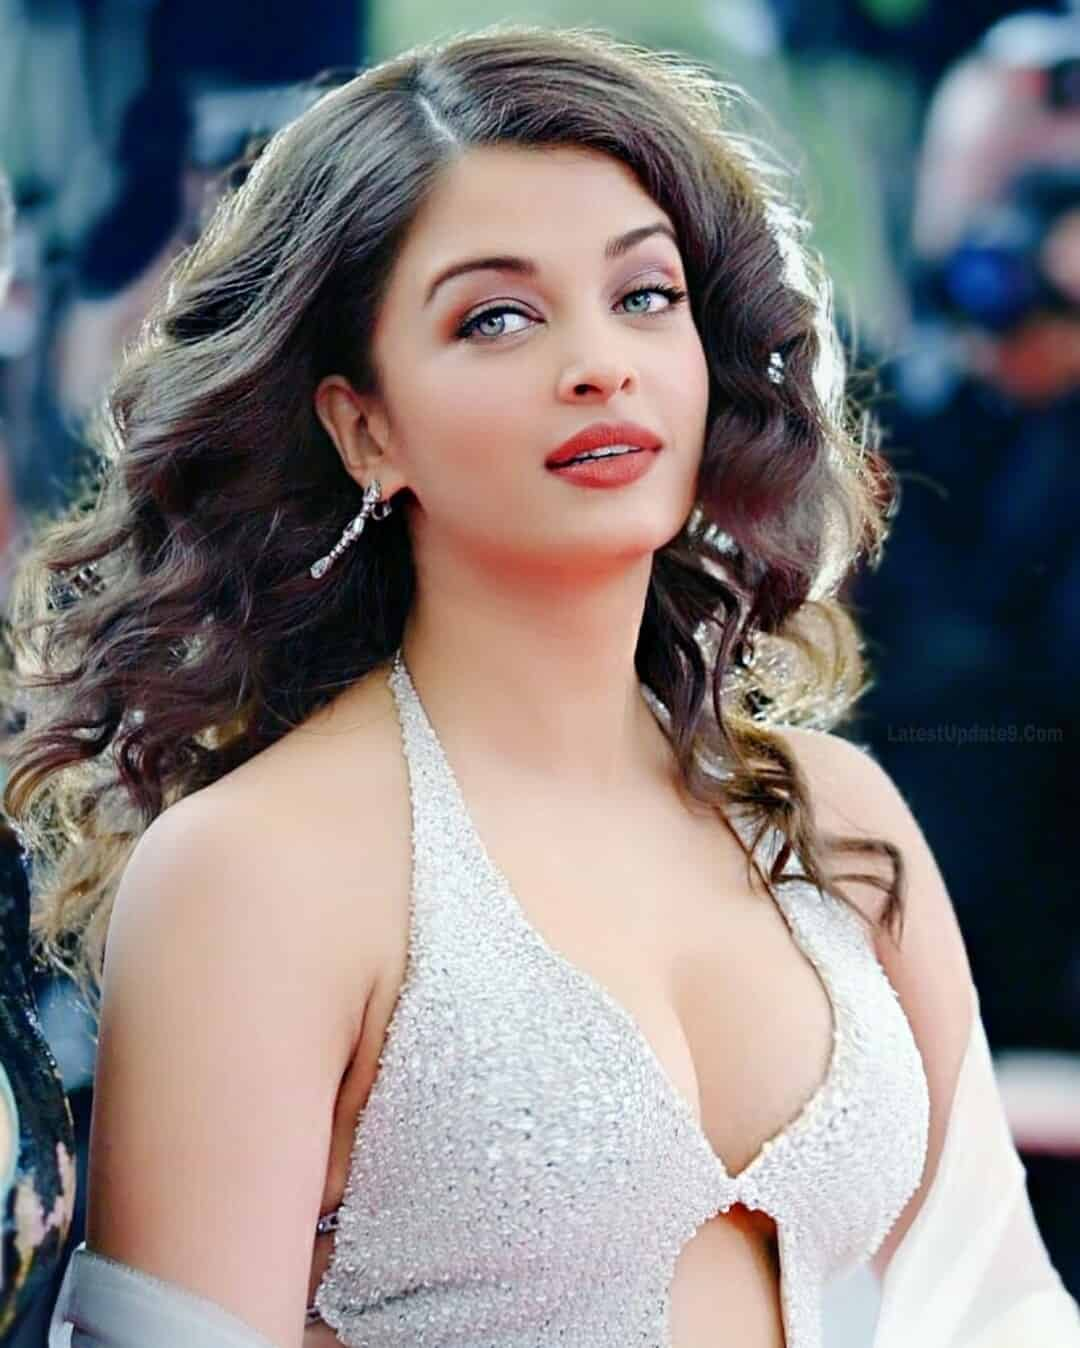 Most Beautiful Aishwarya Rai clevage, Aishwarya Rai hot dress